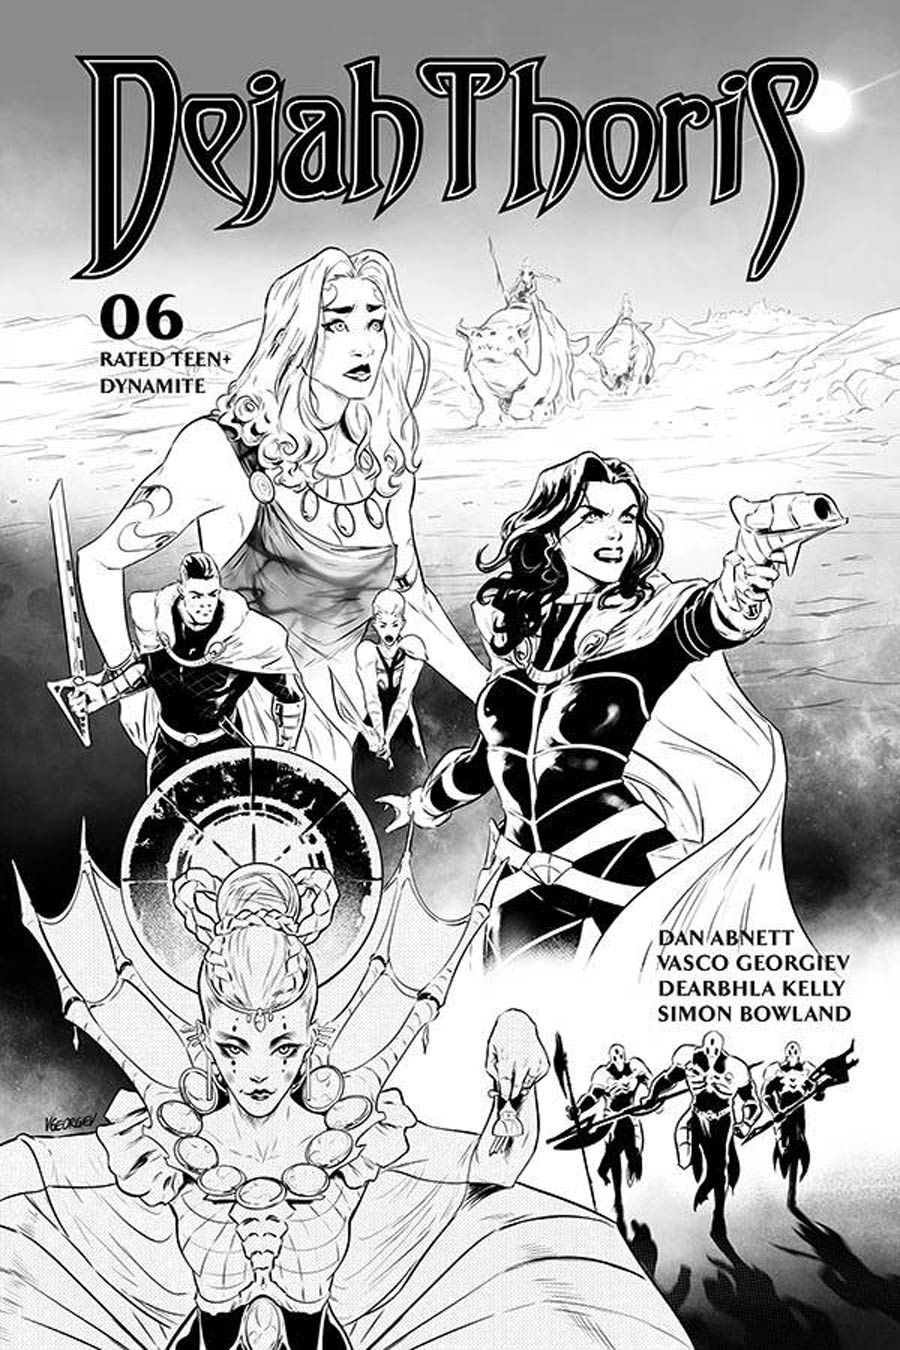 Dejah Thoris Vol 3 #6 Cover N Incentive Vasco Georgiev Black & White Cover